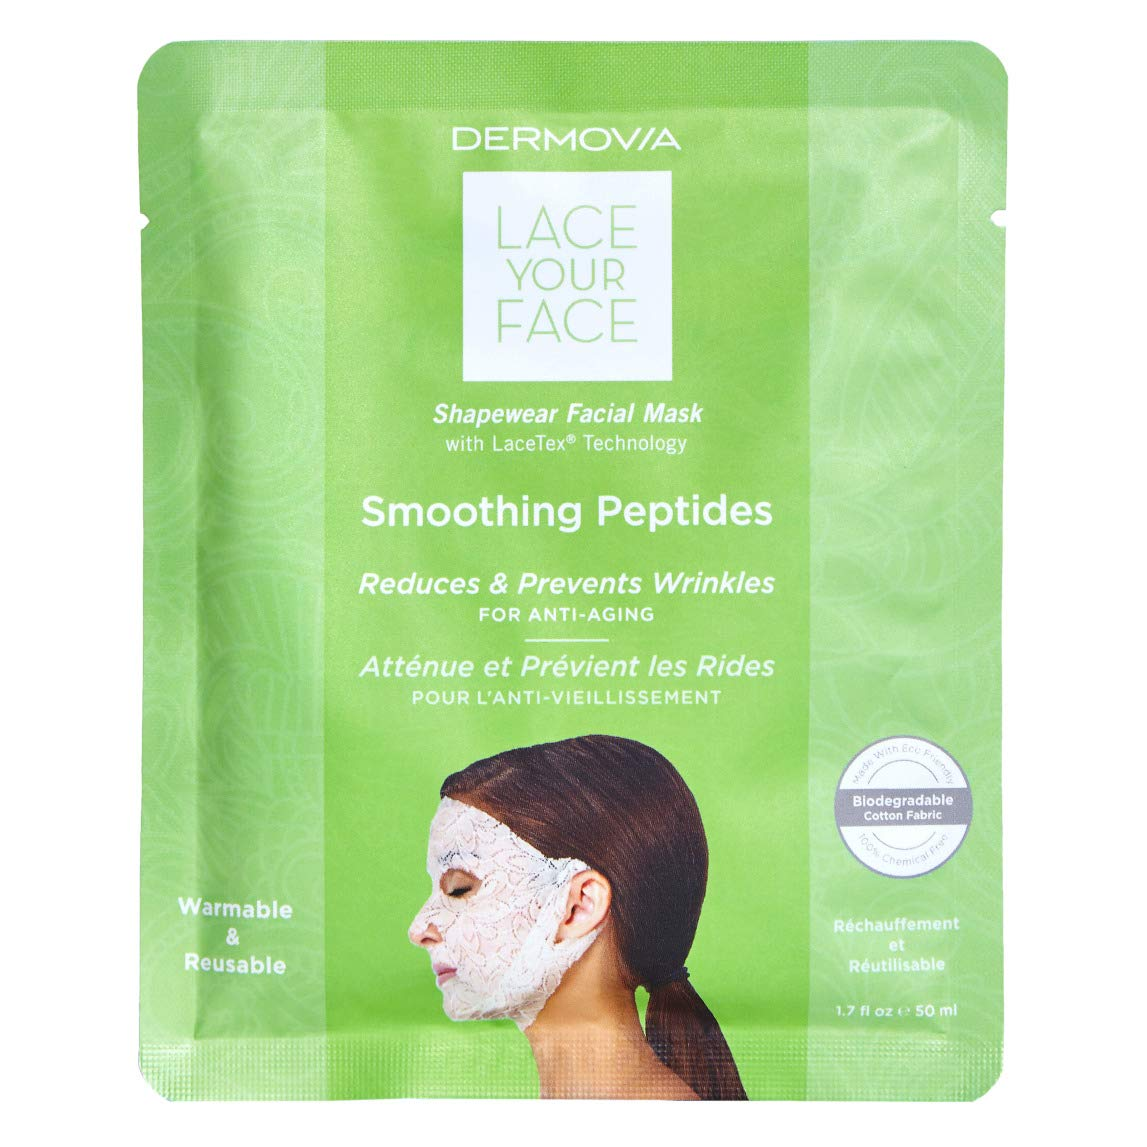 LACE YOUR FACE Patented Compression Facial Mask, AS SEEN ON SHARK TANK, Reusable Biodegradable Cotton Anti Aging Skin Care, Smoothing Peptides, Single